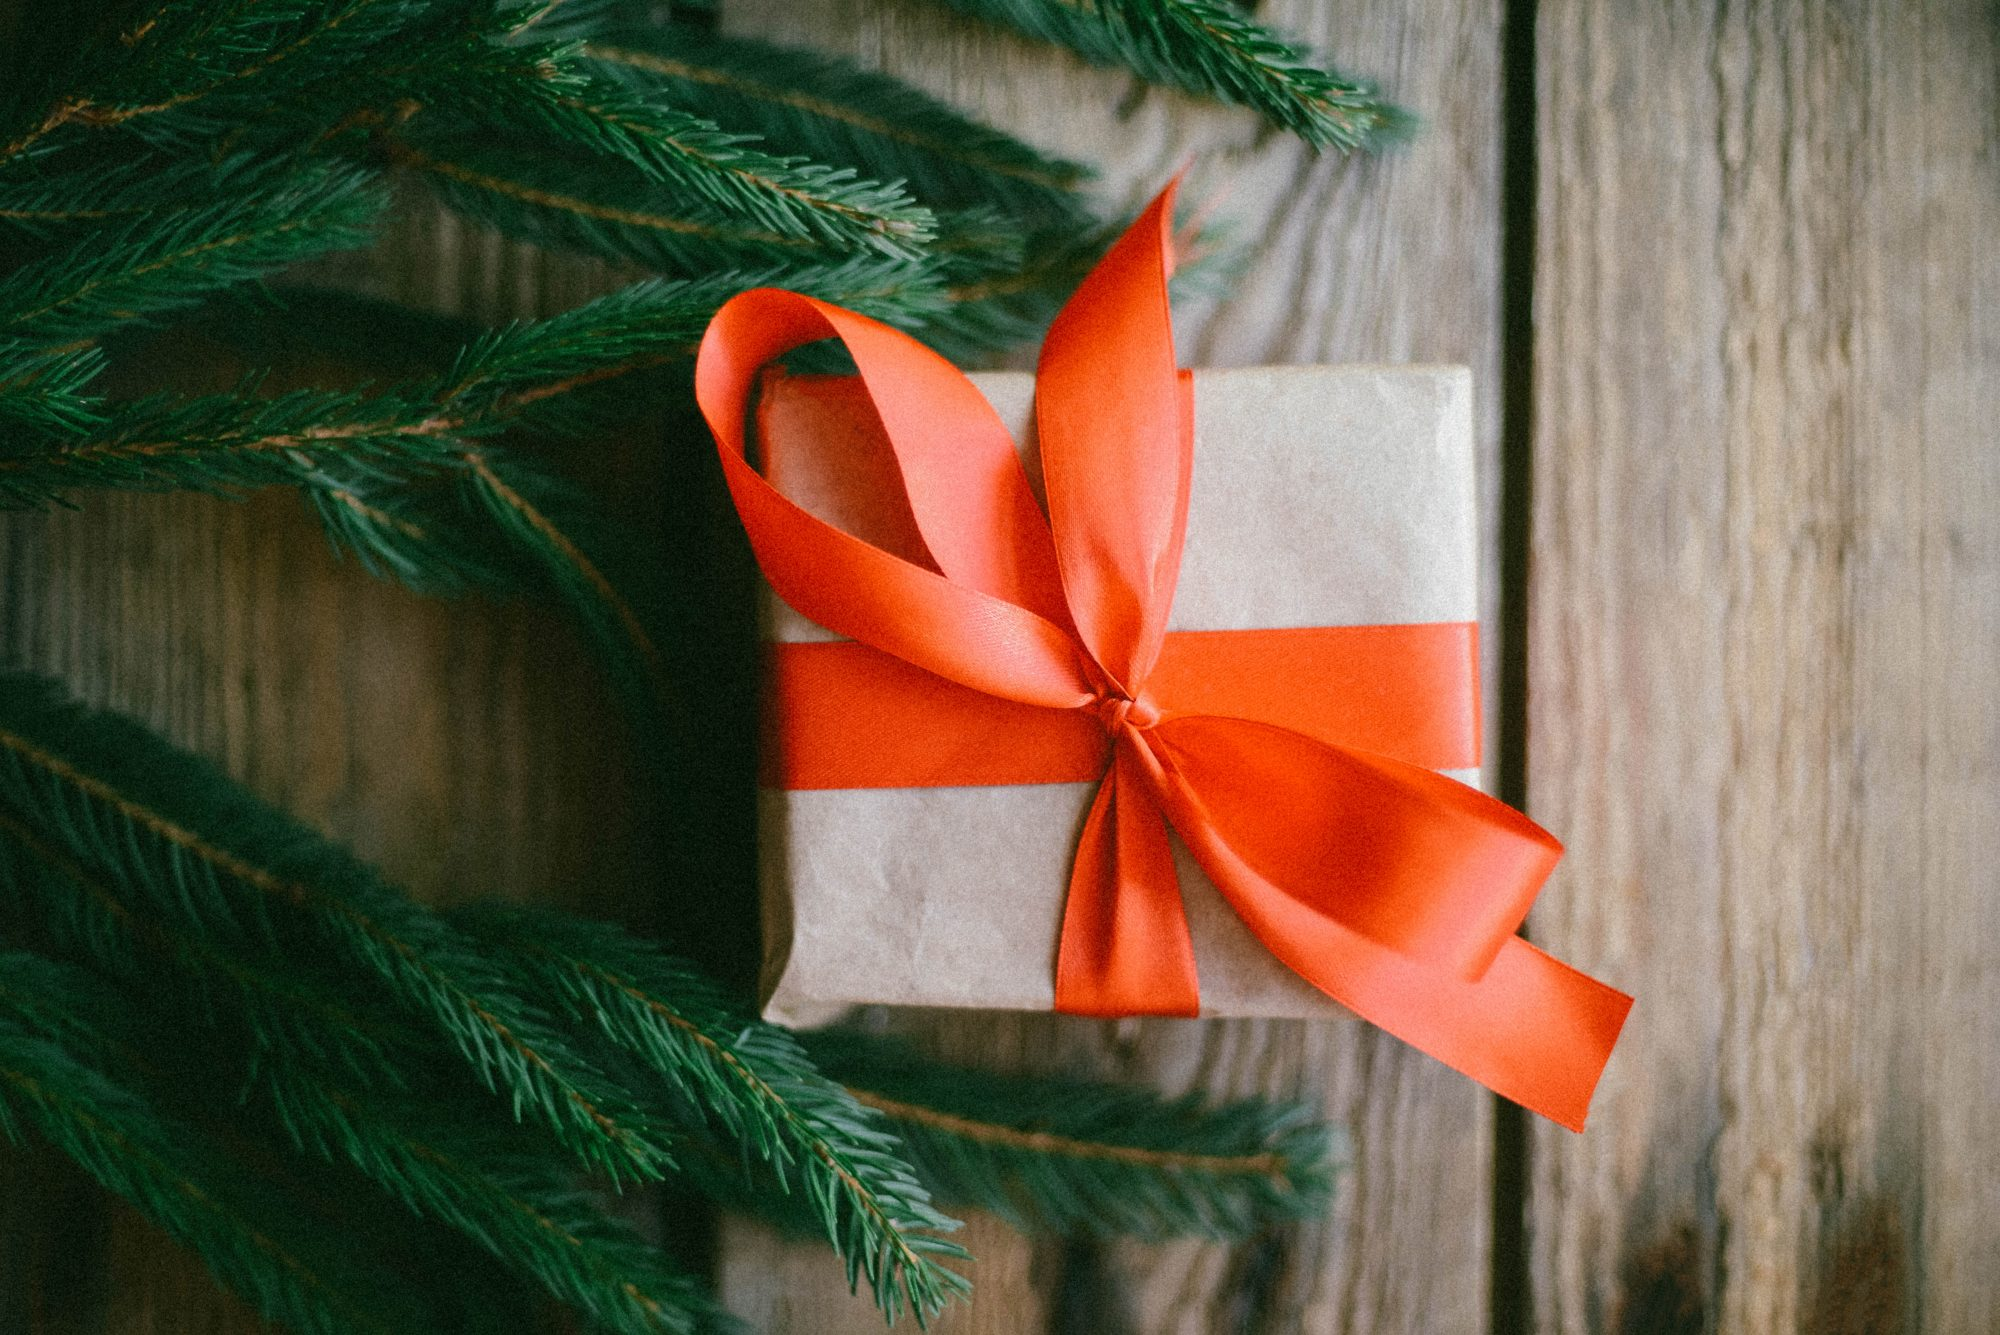 Christmas Gifts, Holiday Gift Ideas for Christmas | Food & Wine